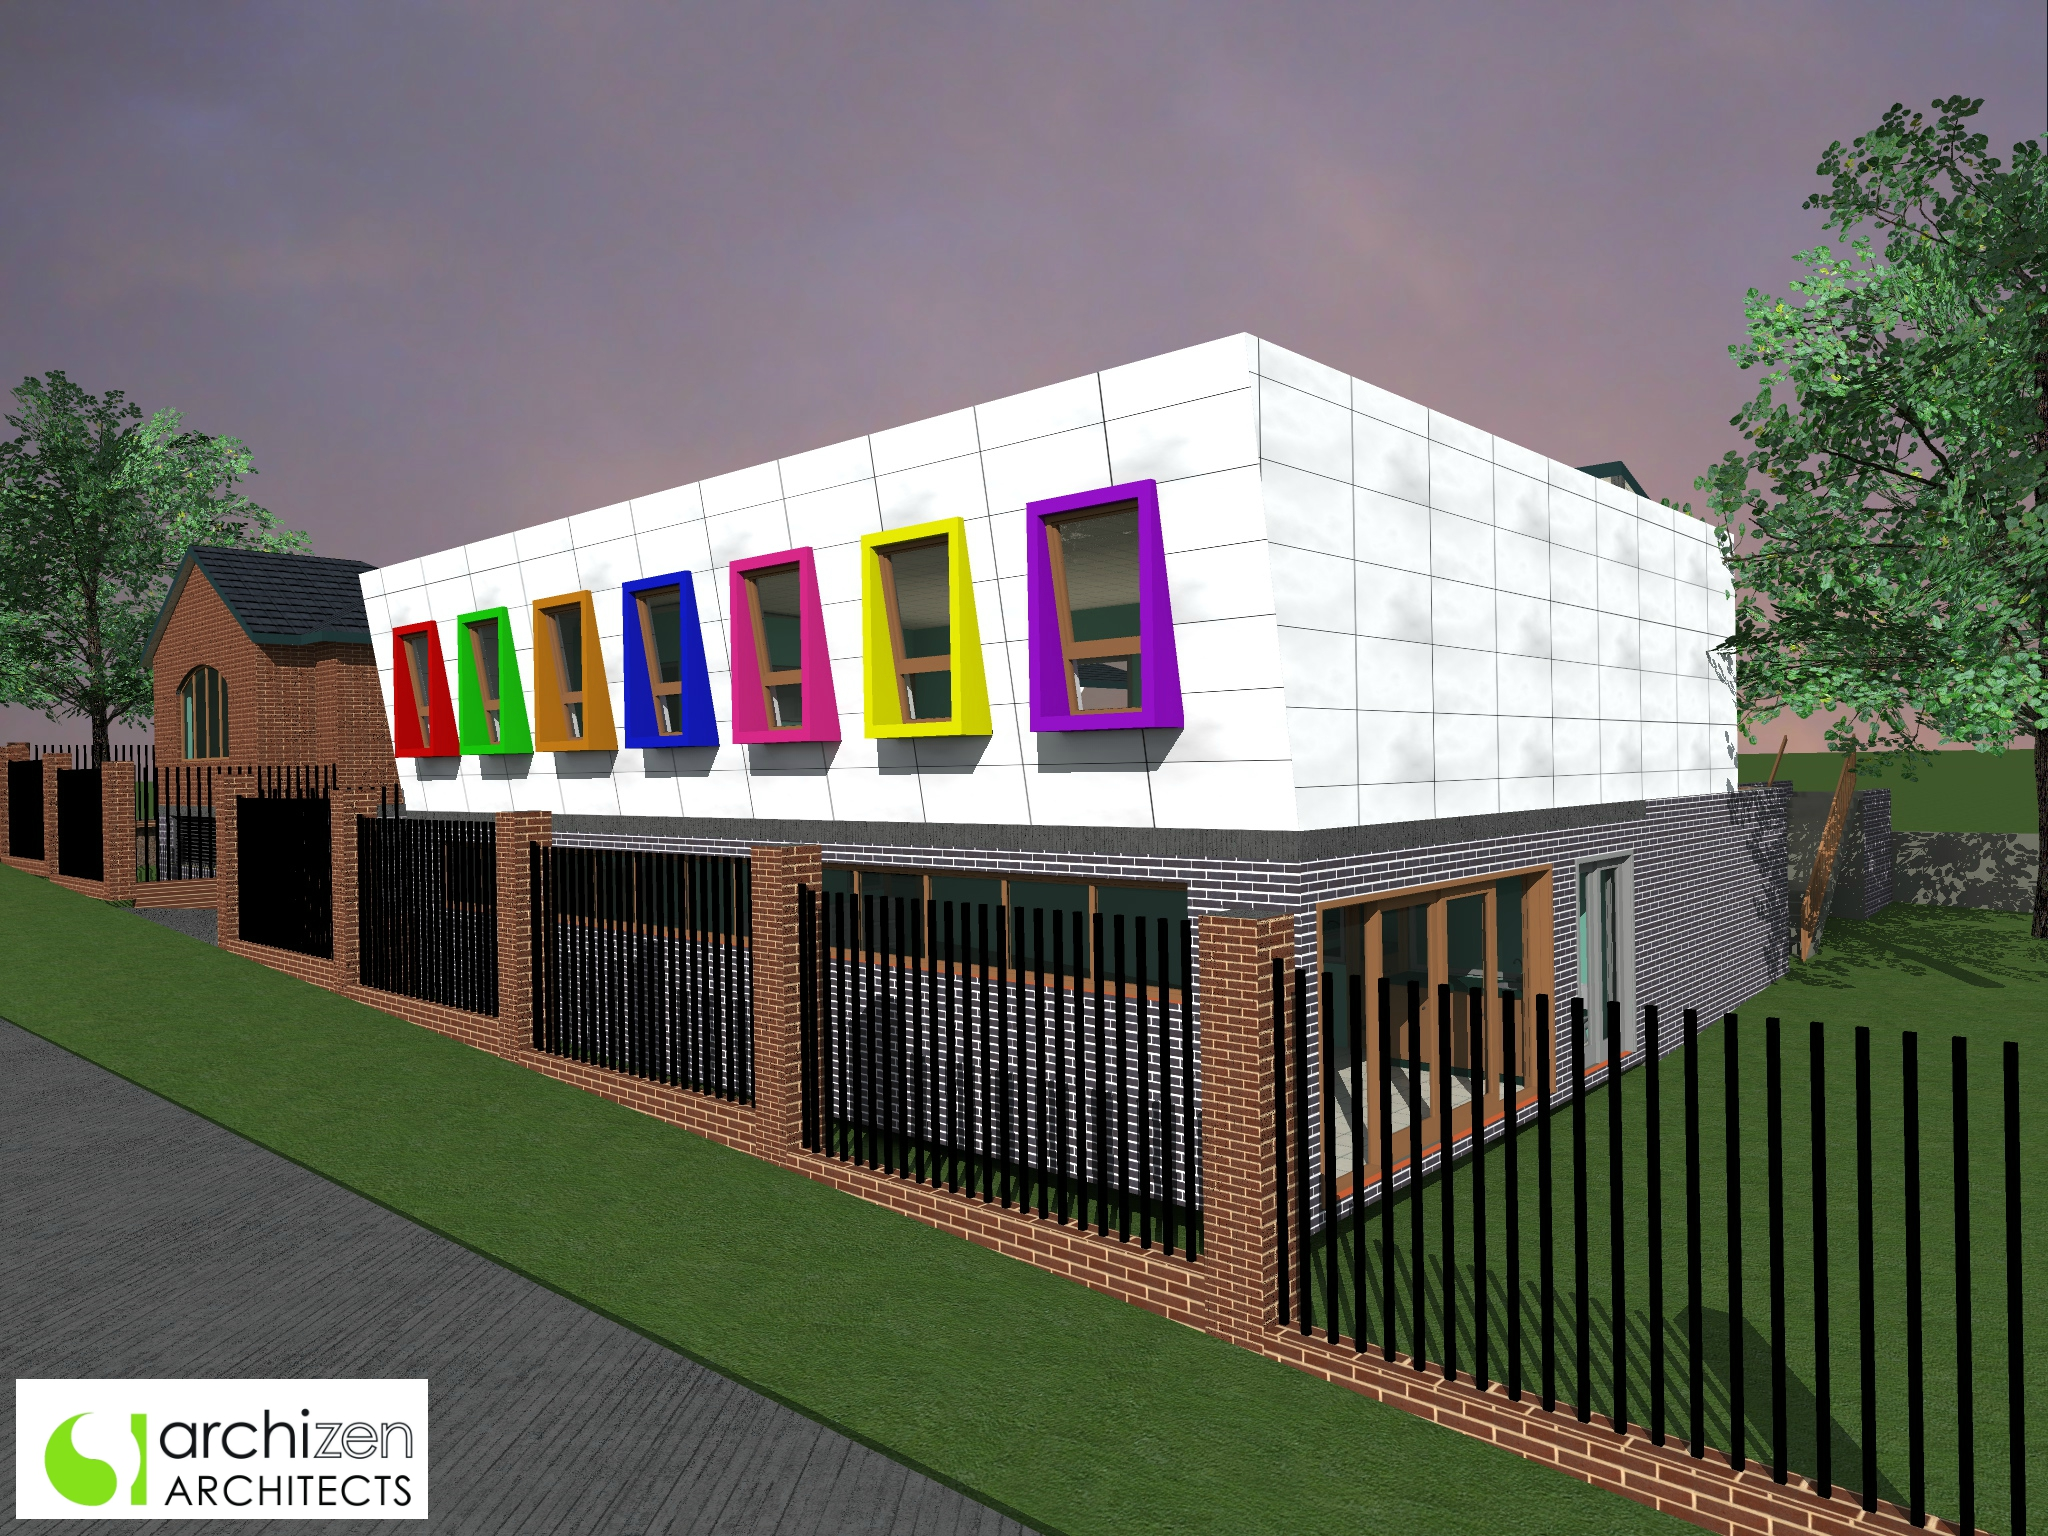 Chatswood Childcare Centre Architects Preschool Design Archizen Architects Willoughby Council Liverpool Campbelltown Parramatta Blacktown Blue Mountains Pittwater